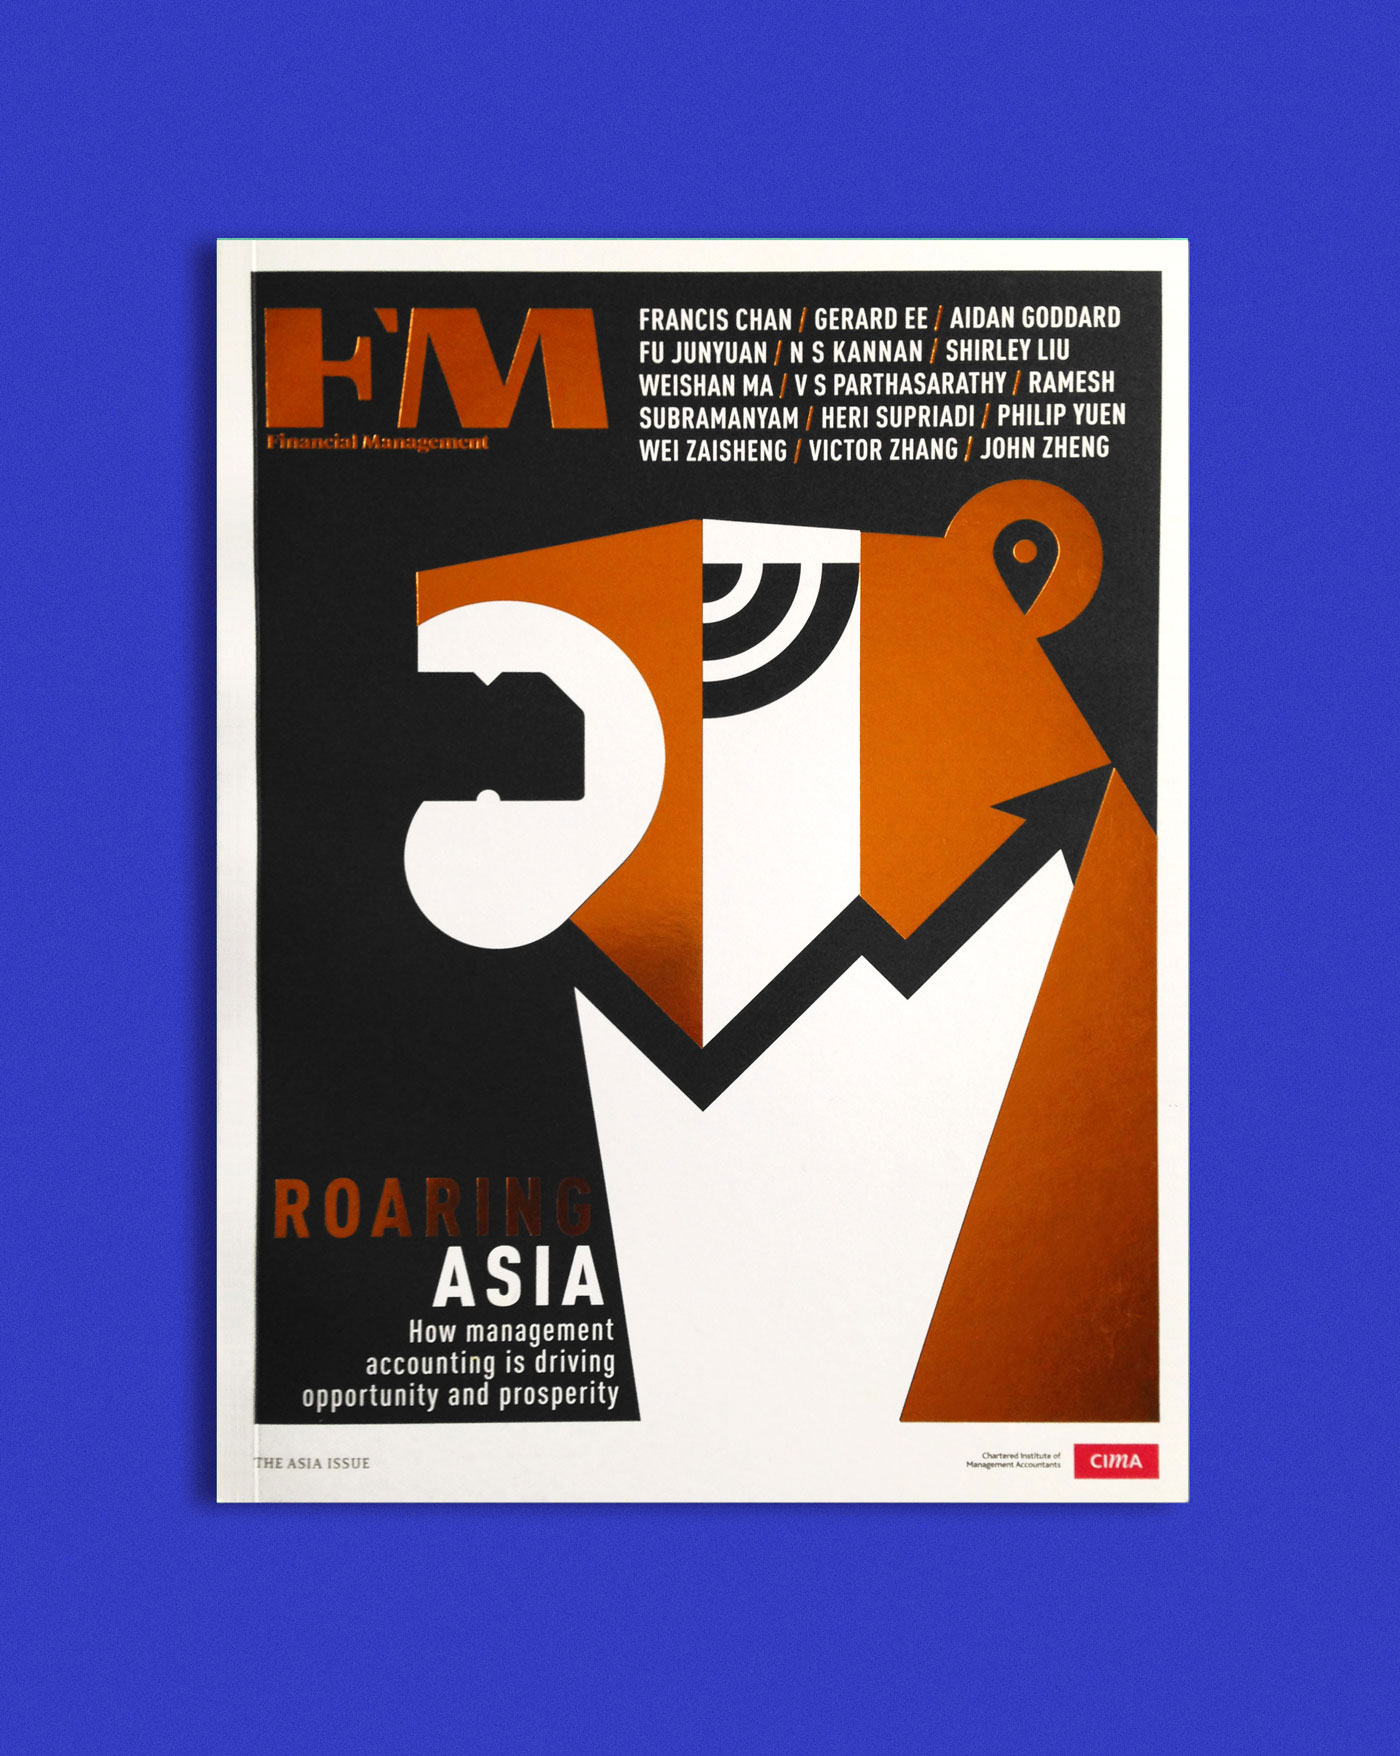 FM World - Cover illustration about the Asian Tiger and the tech industry